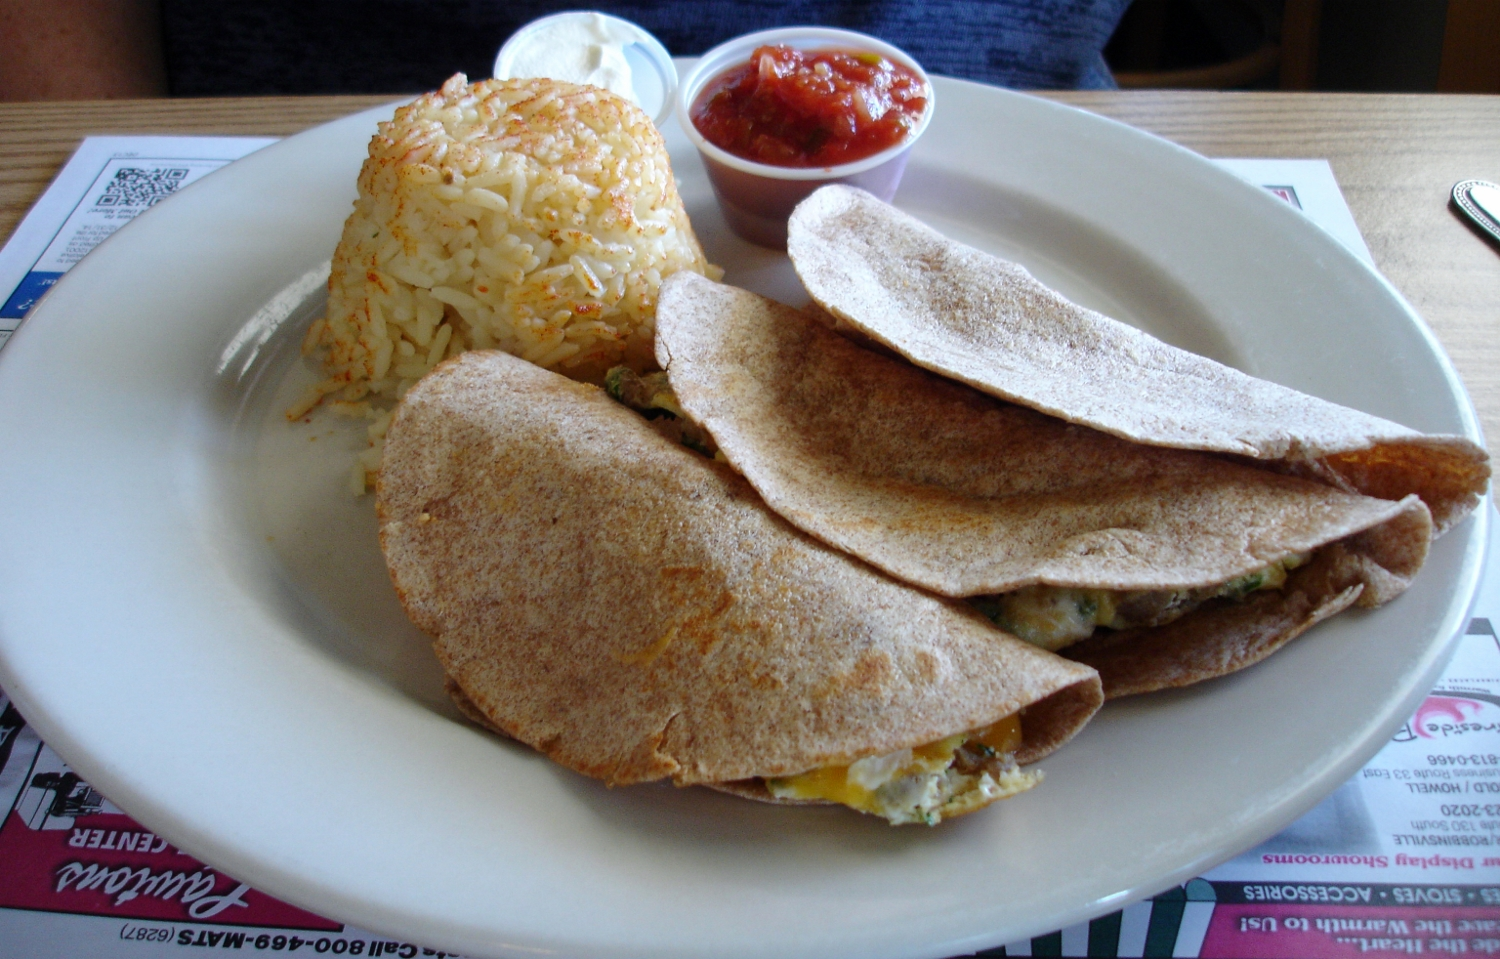 Breakfast tacos, anothe breakfast special: the wheat tortillas are filled with sausage, eggs, cilantro, salsa, and cheddar. Sue gave a big thumbs up.